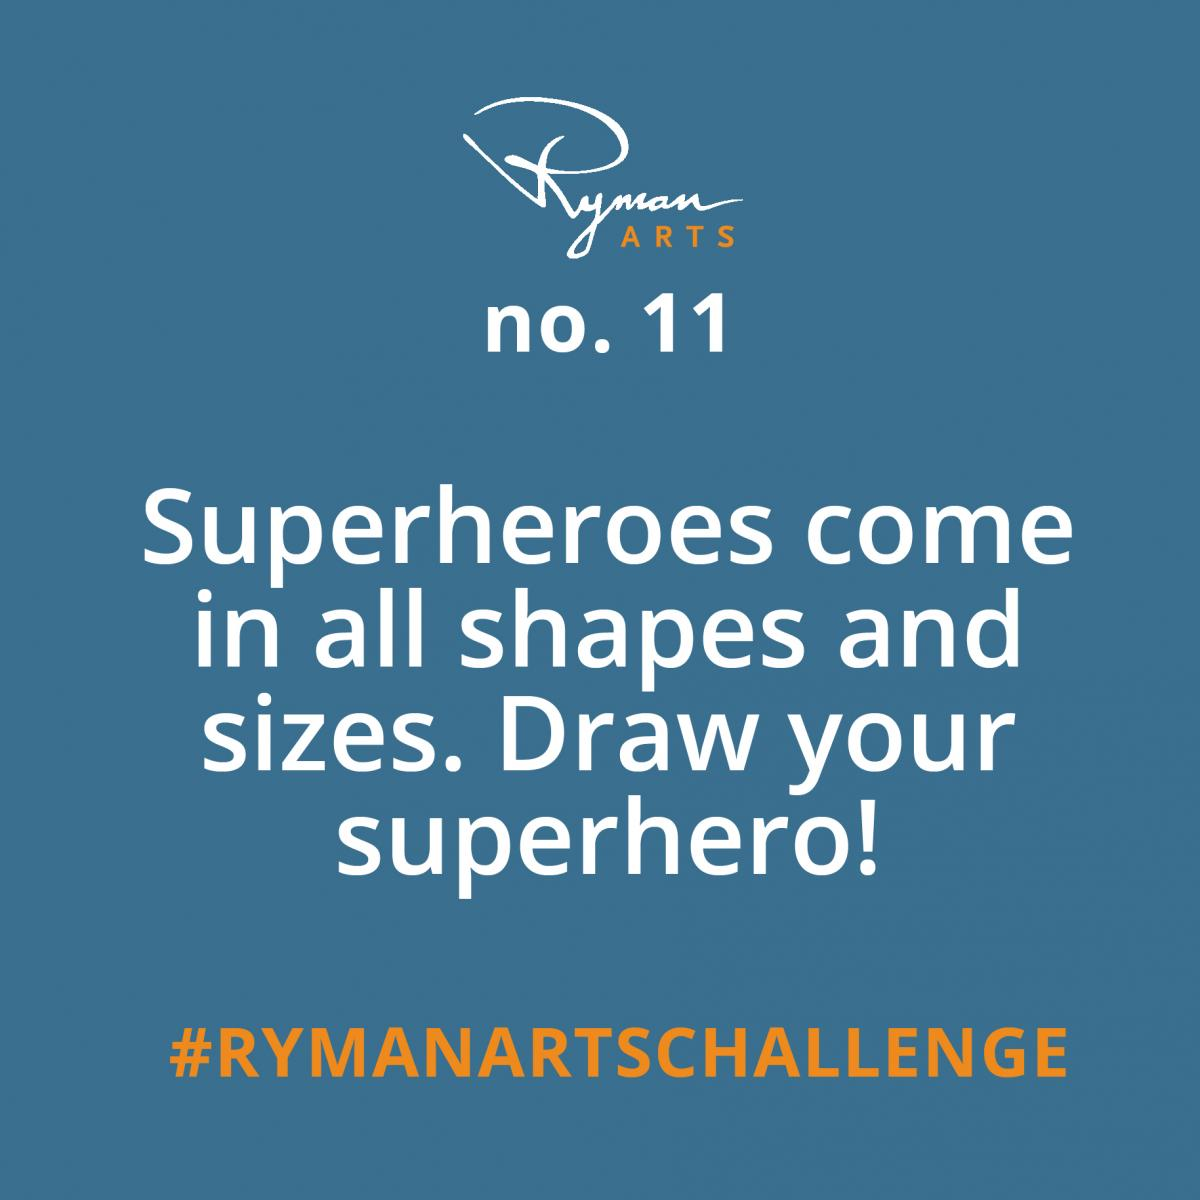 Ryman Arts Drawing Challenge: Superheroes come in all shapes and sizes. Draw your superhero!